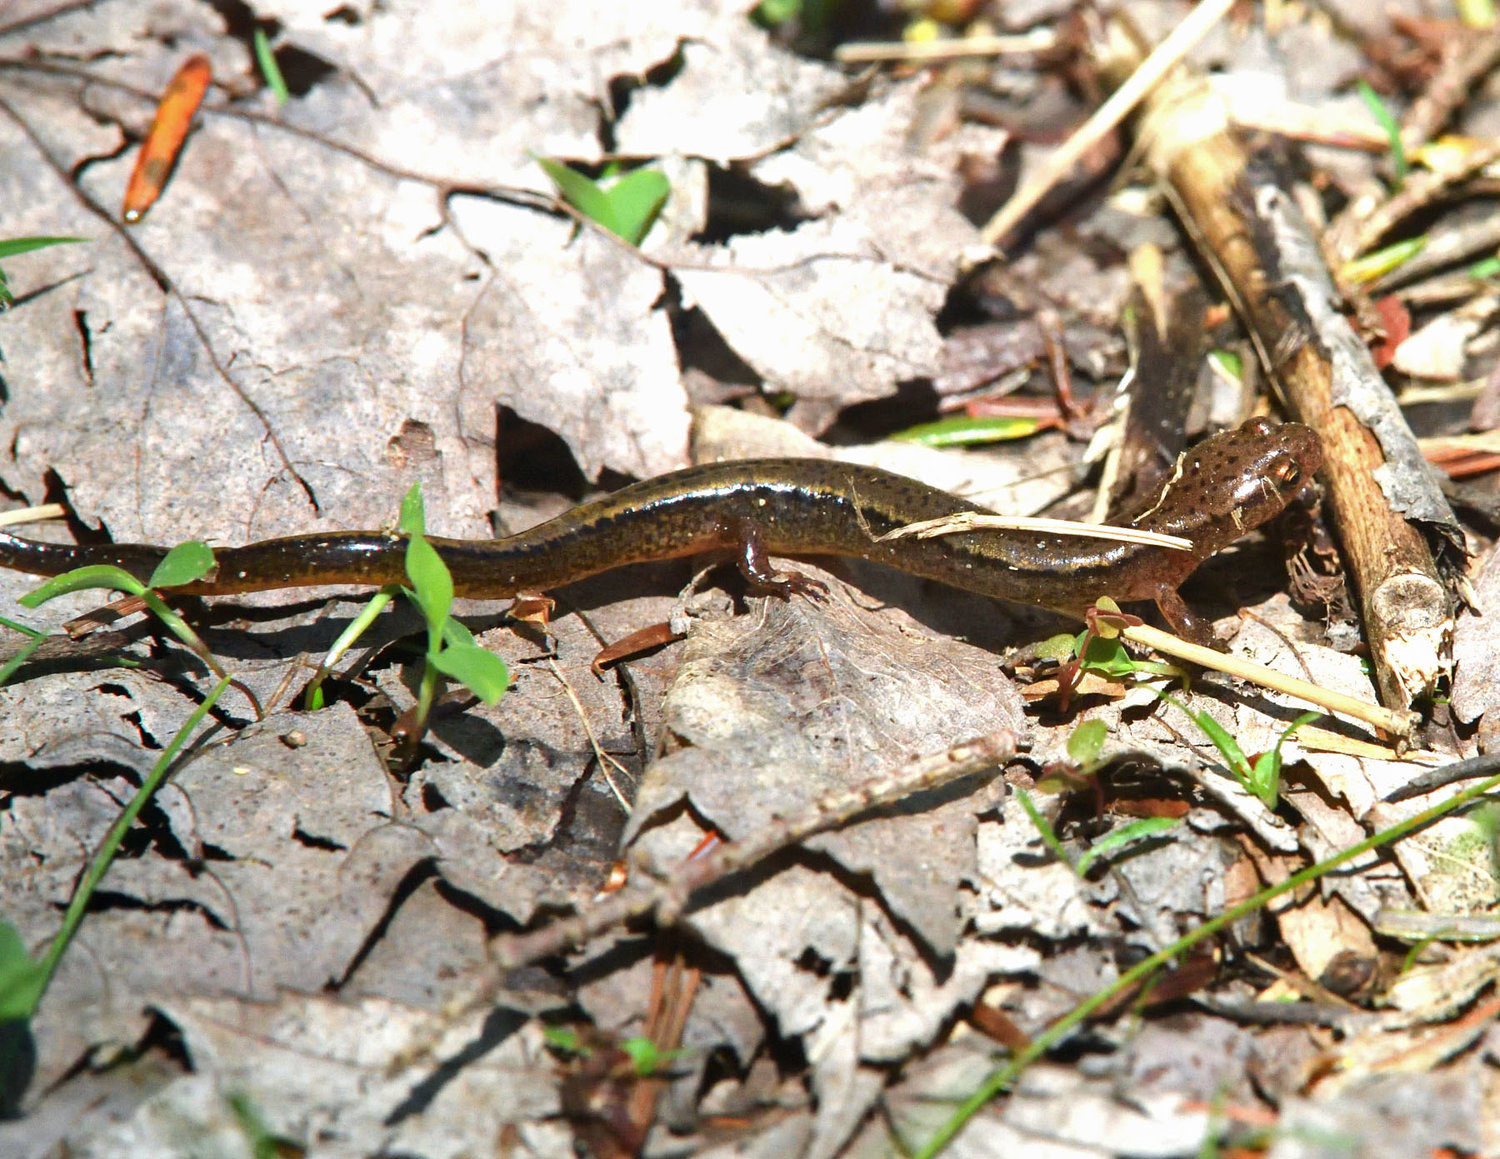 The two-lined salamander, also known as a brook salamander, is a member of the Eurycea bislineata. They are brown with two dark lines that run down either side of the vertebrae. Between the black stripes is a medial strip of light brown that can appear iridescent. This species is also found near brooks, though usually not in the stream bed.